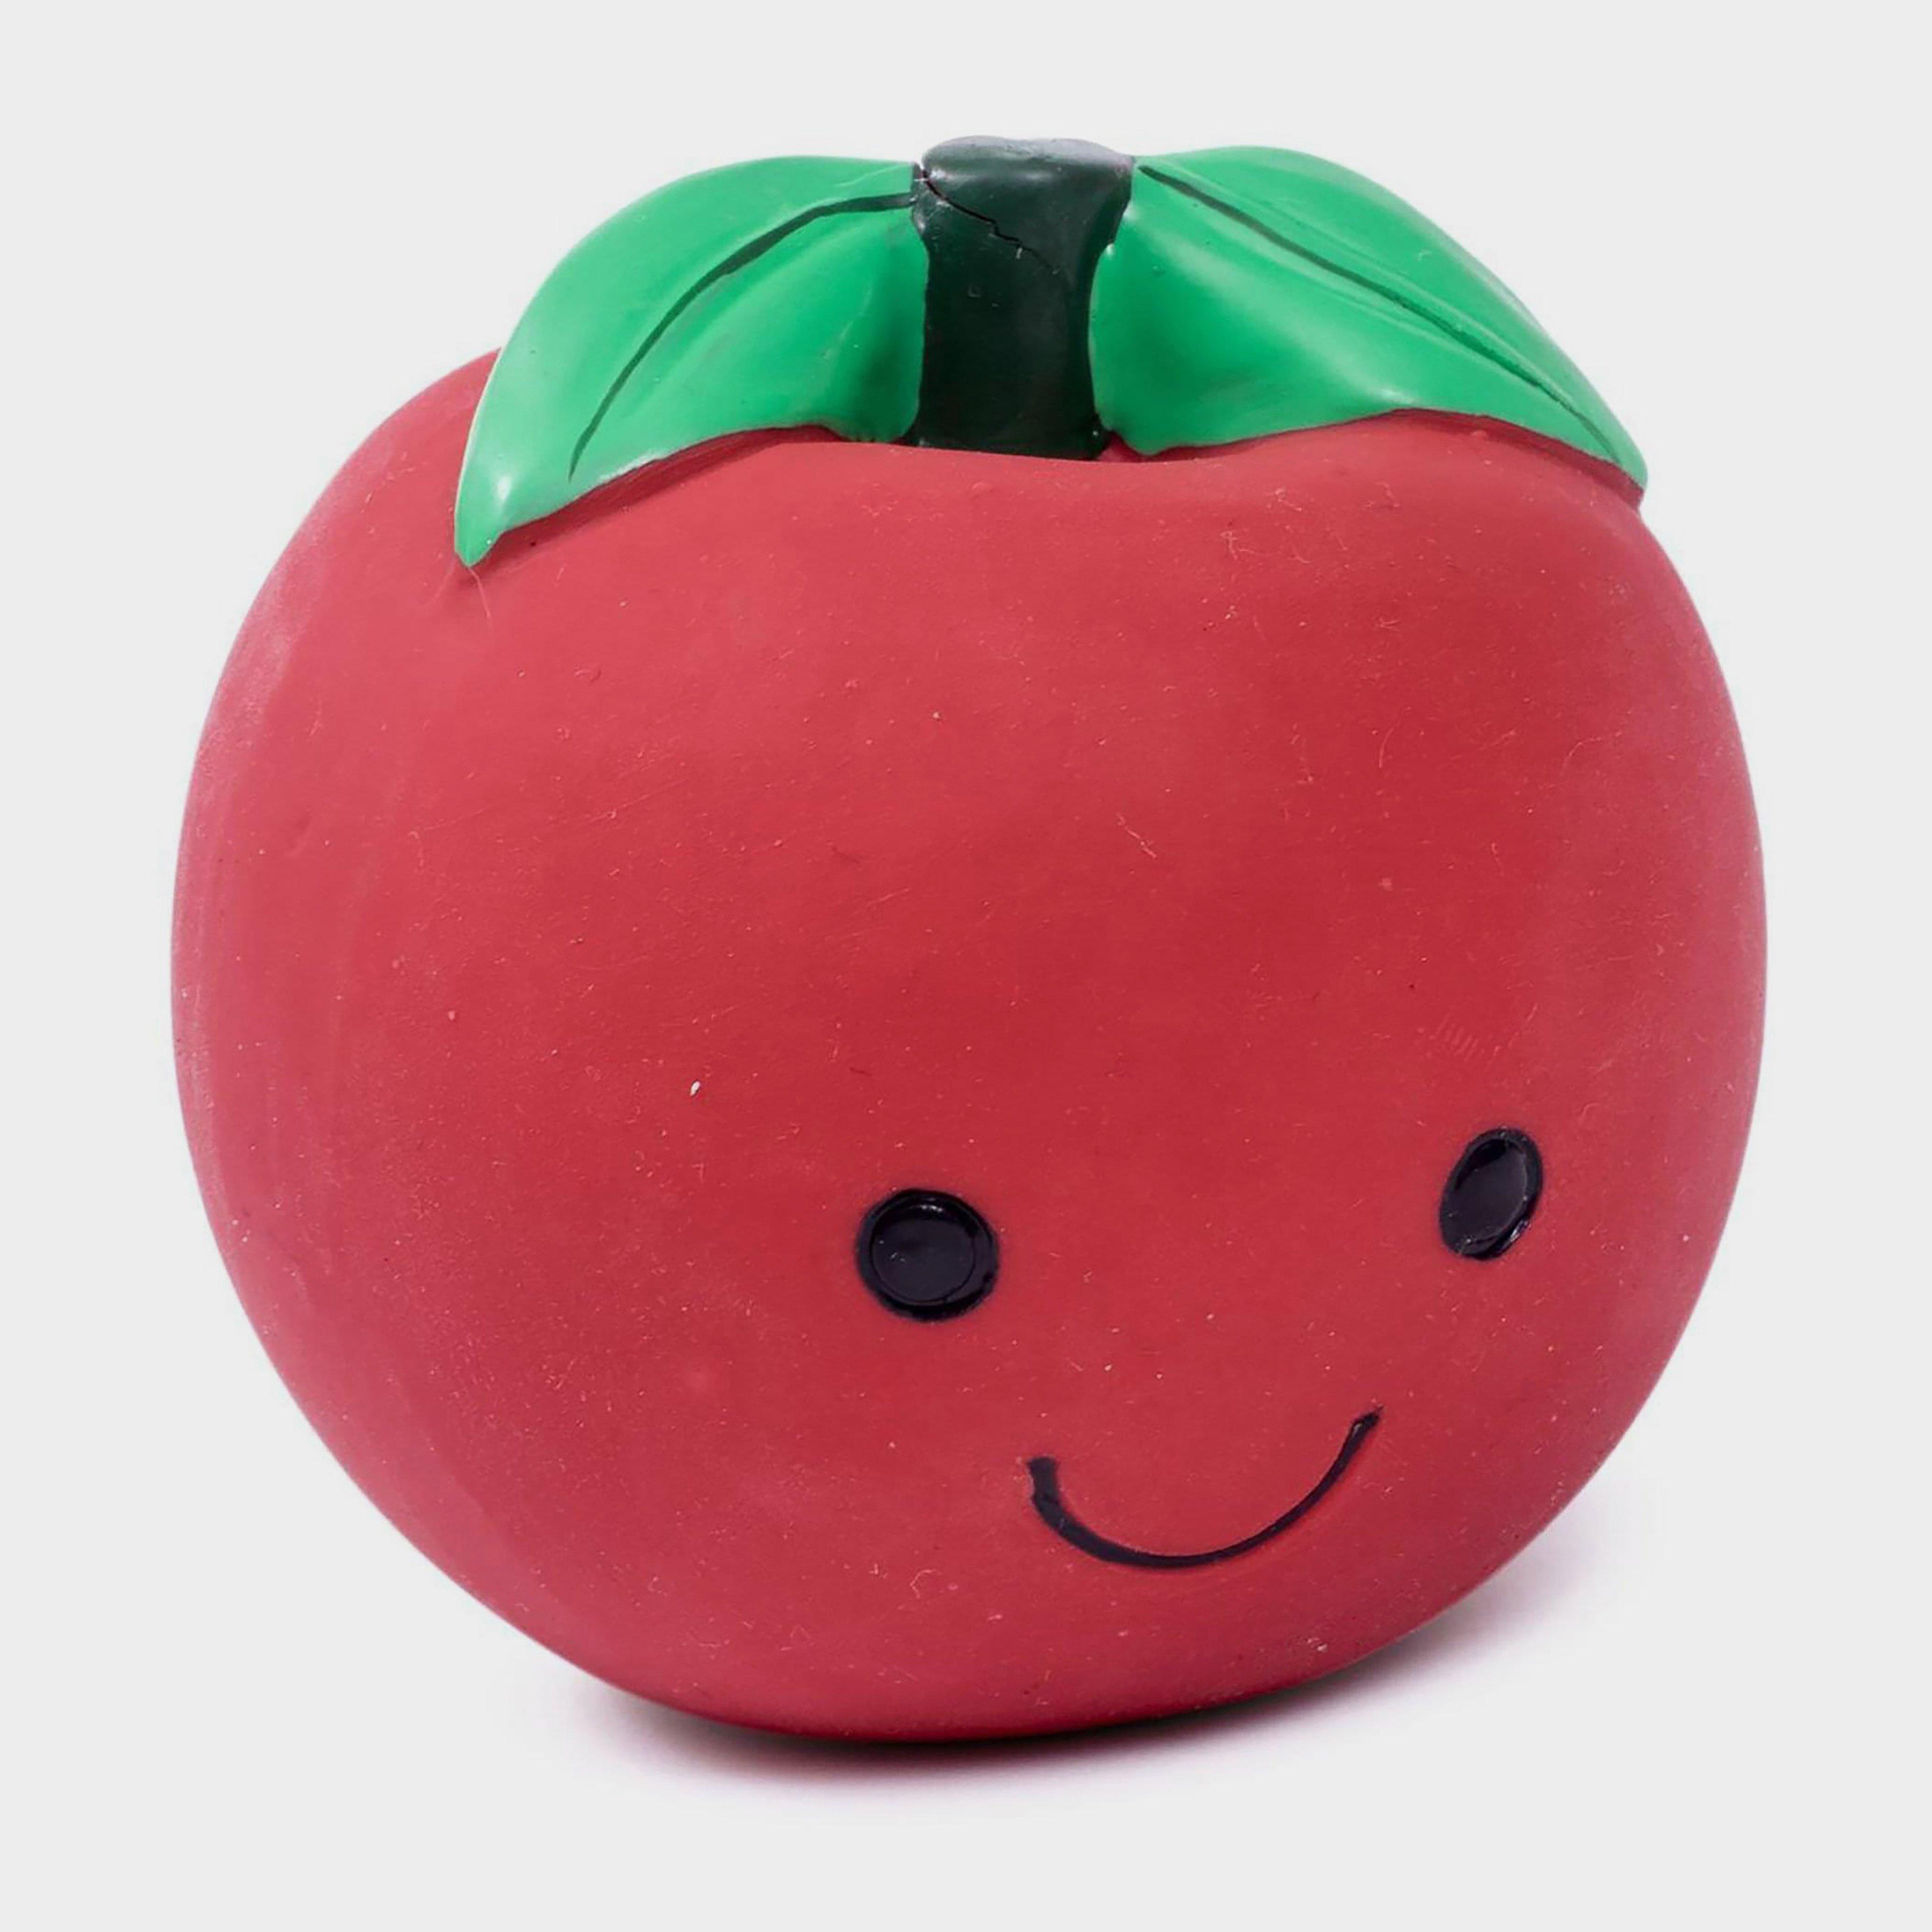 Image of Petface Latex Tomato Small - Red/Red, RED/RED